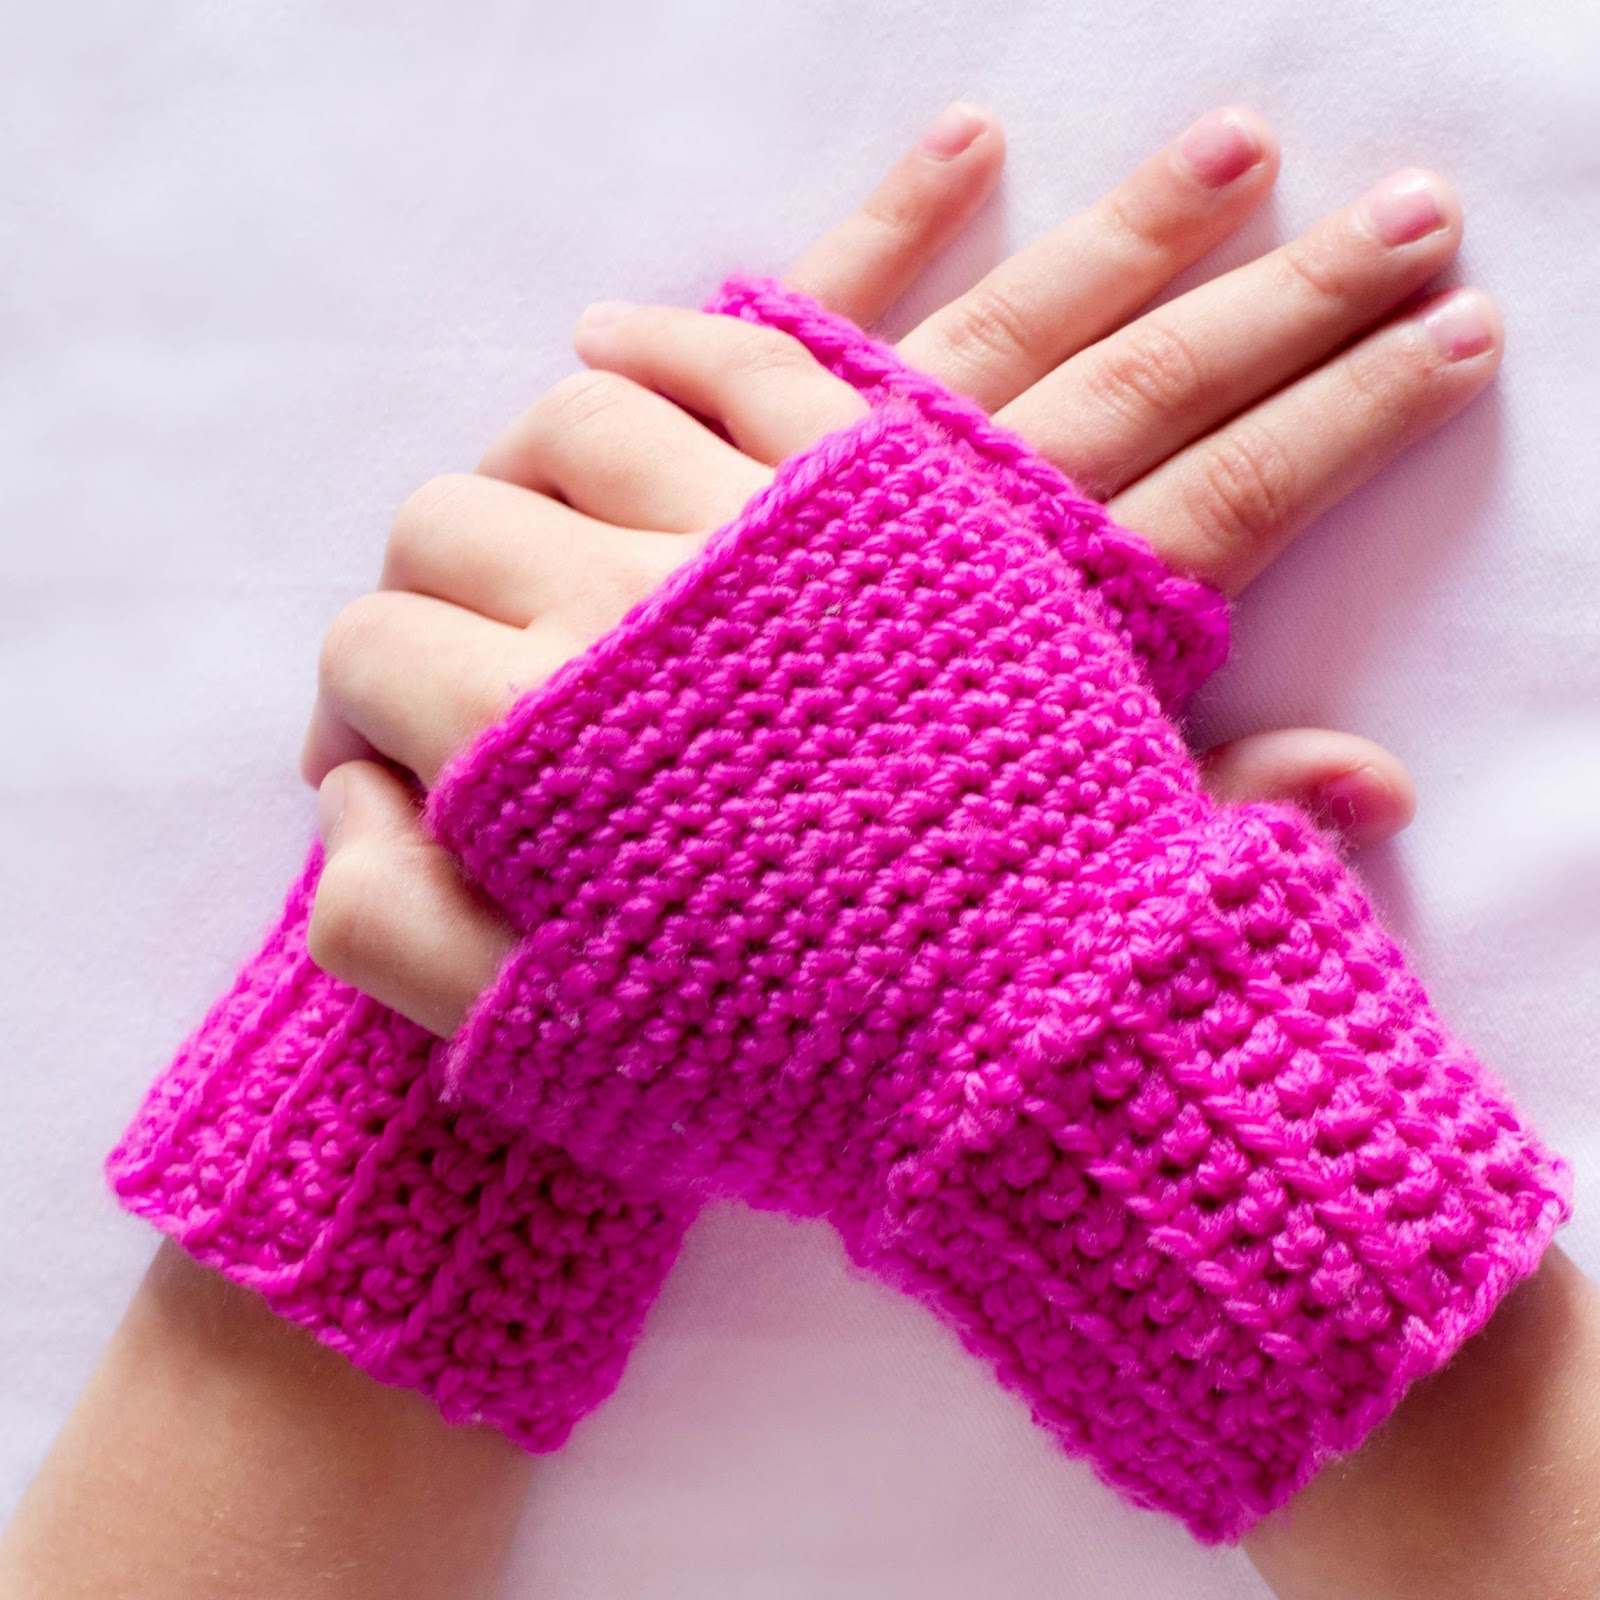 Crocheting Gloves Fingerless : ... Crochet, Create: Princess In Pink ~ Basic Fingerless Gloves Crochet